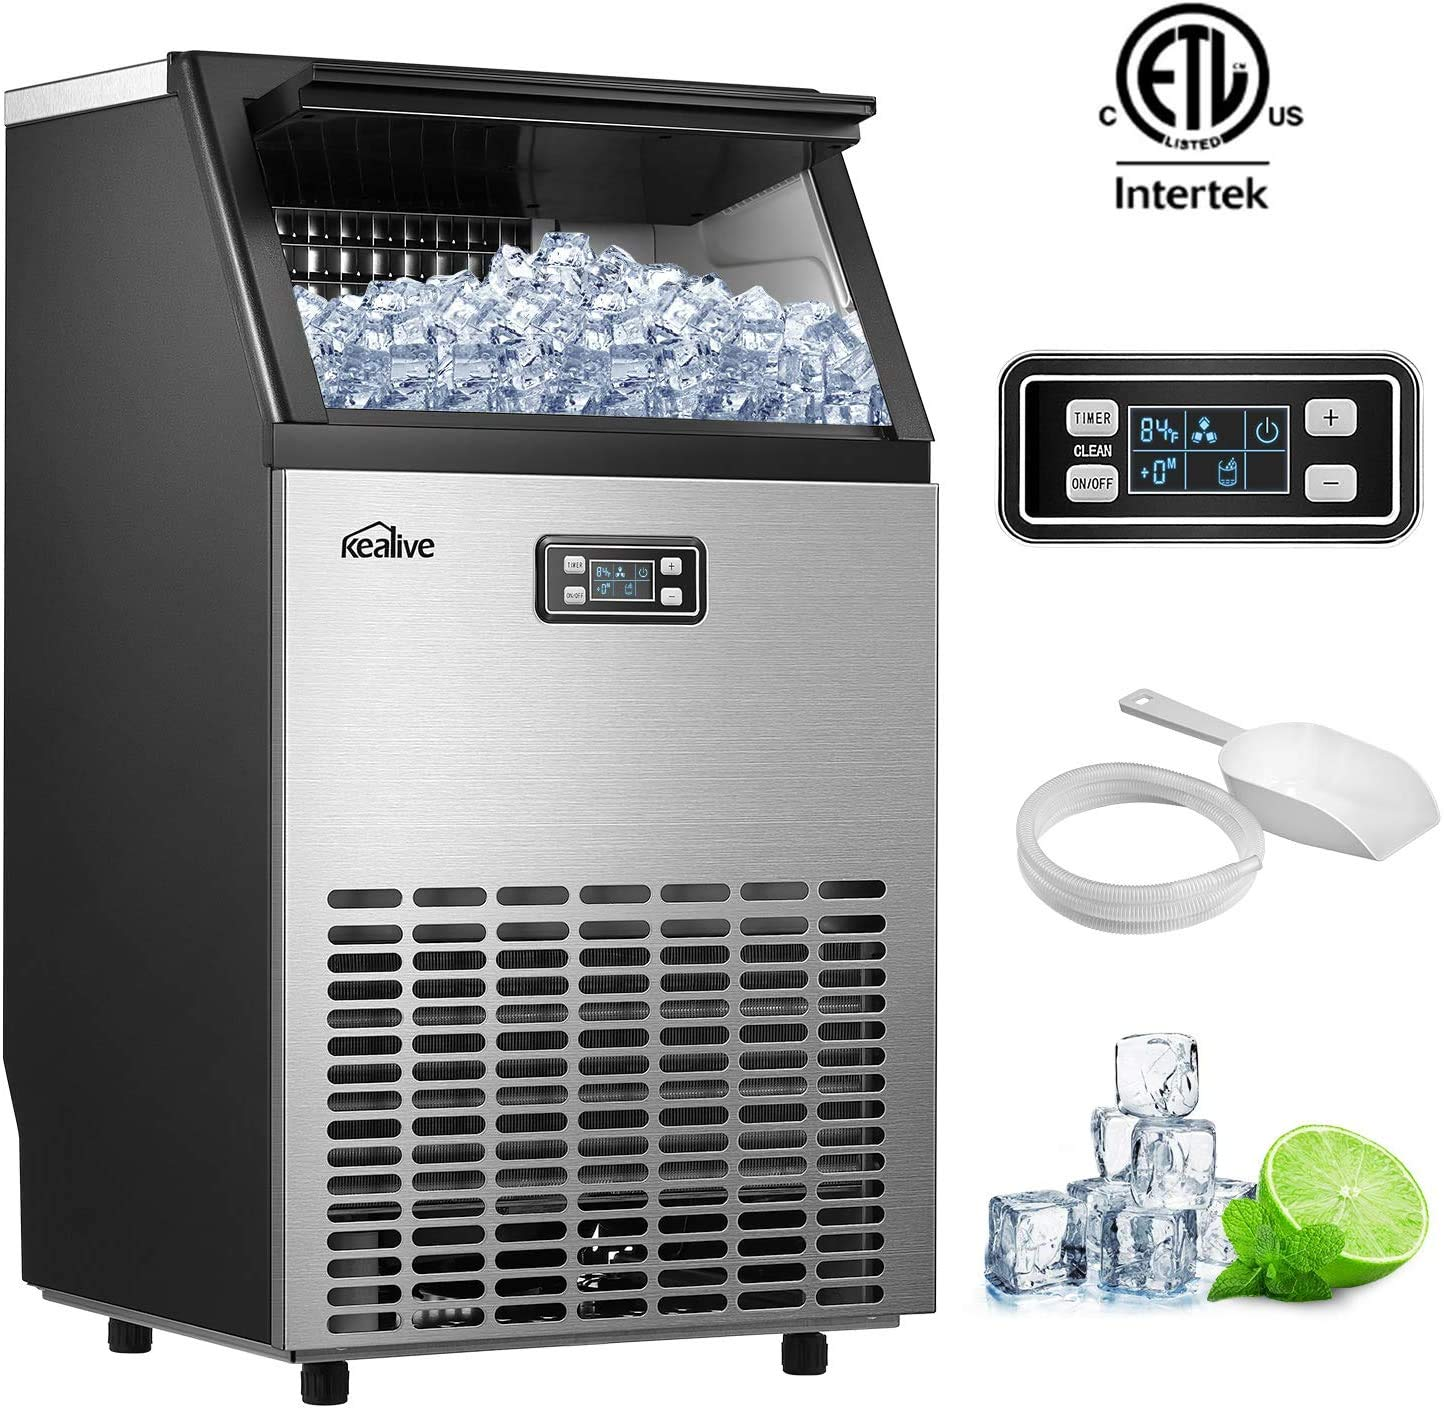 Kealive Commercial Ice Maker Machine, Stainless Steel Freestanding Ice Cube Maker, 99lbs Ice in 24hrs with 33 lbs Storage Capacity, Self-Cleaning LCD Control Panel with Ice Scoop and Connection Hose